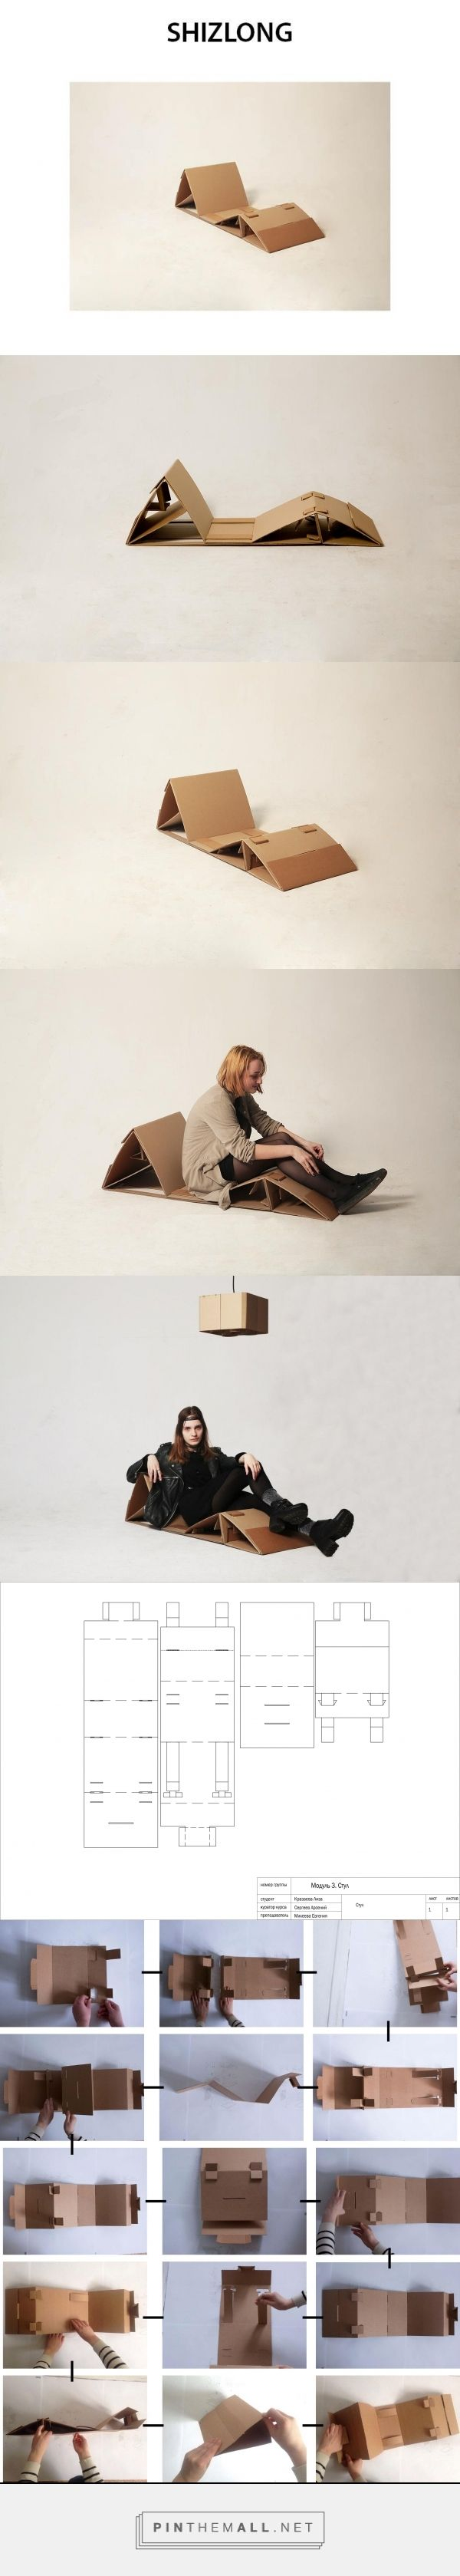 Comfortable cardboard chair designs - Find This Pin And More On Cardboard Furniture